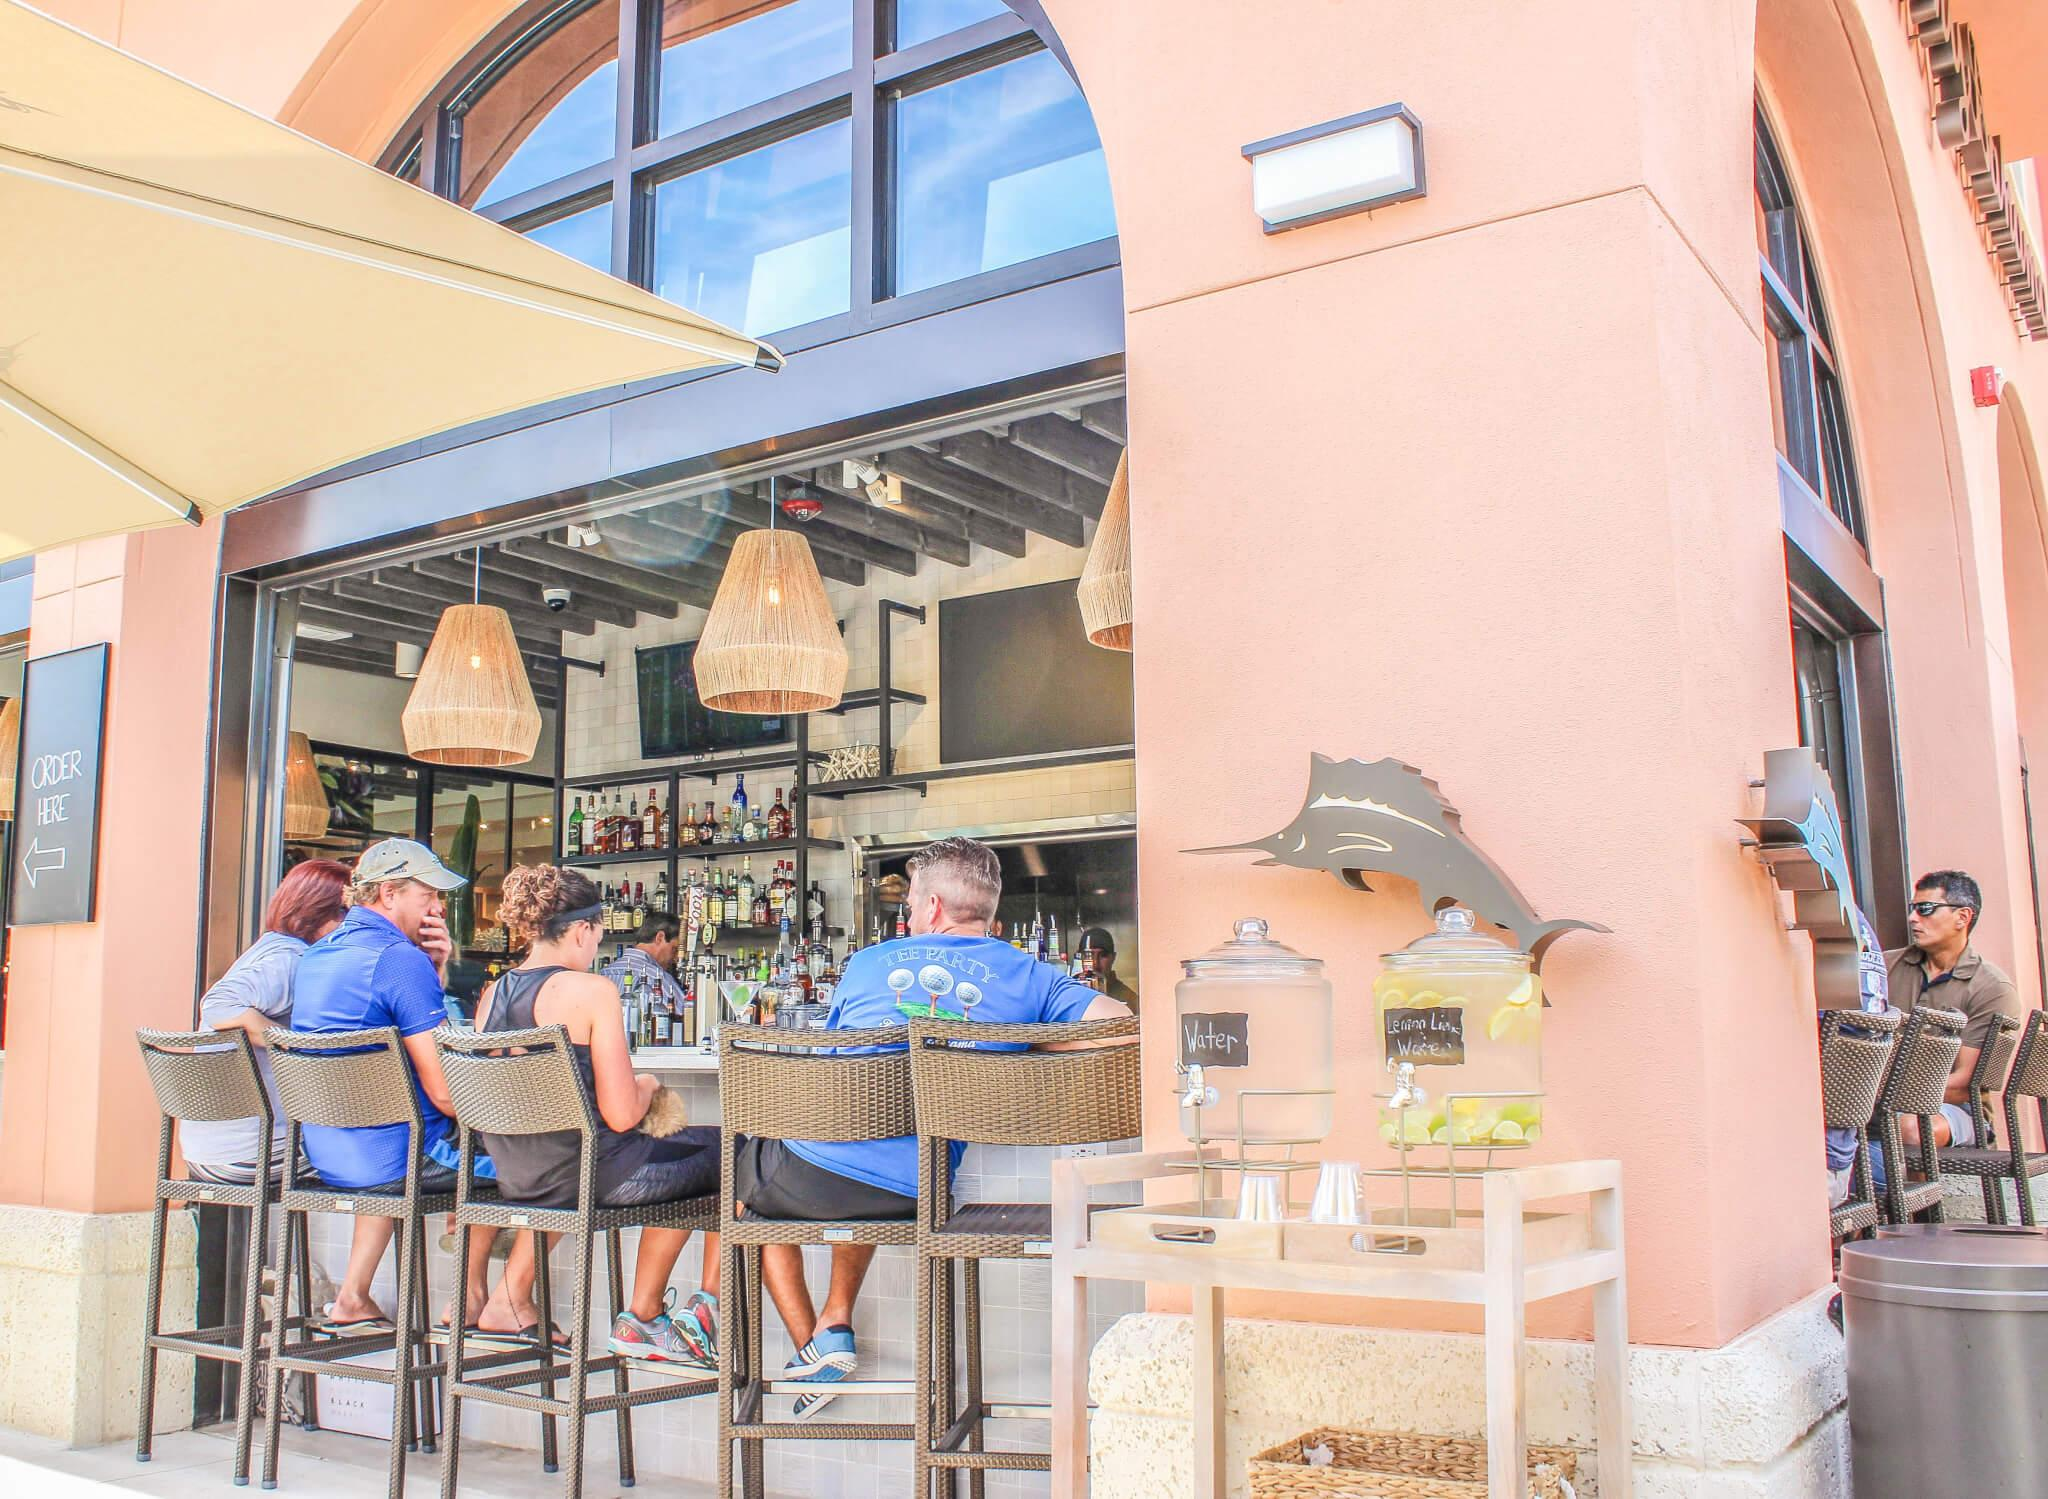 The Marlin Bar blends casual dining with Tommy Bahama retail store